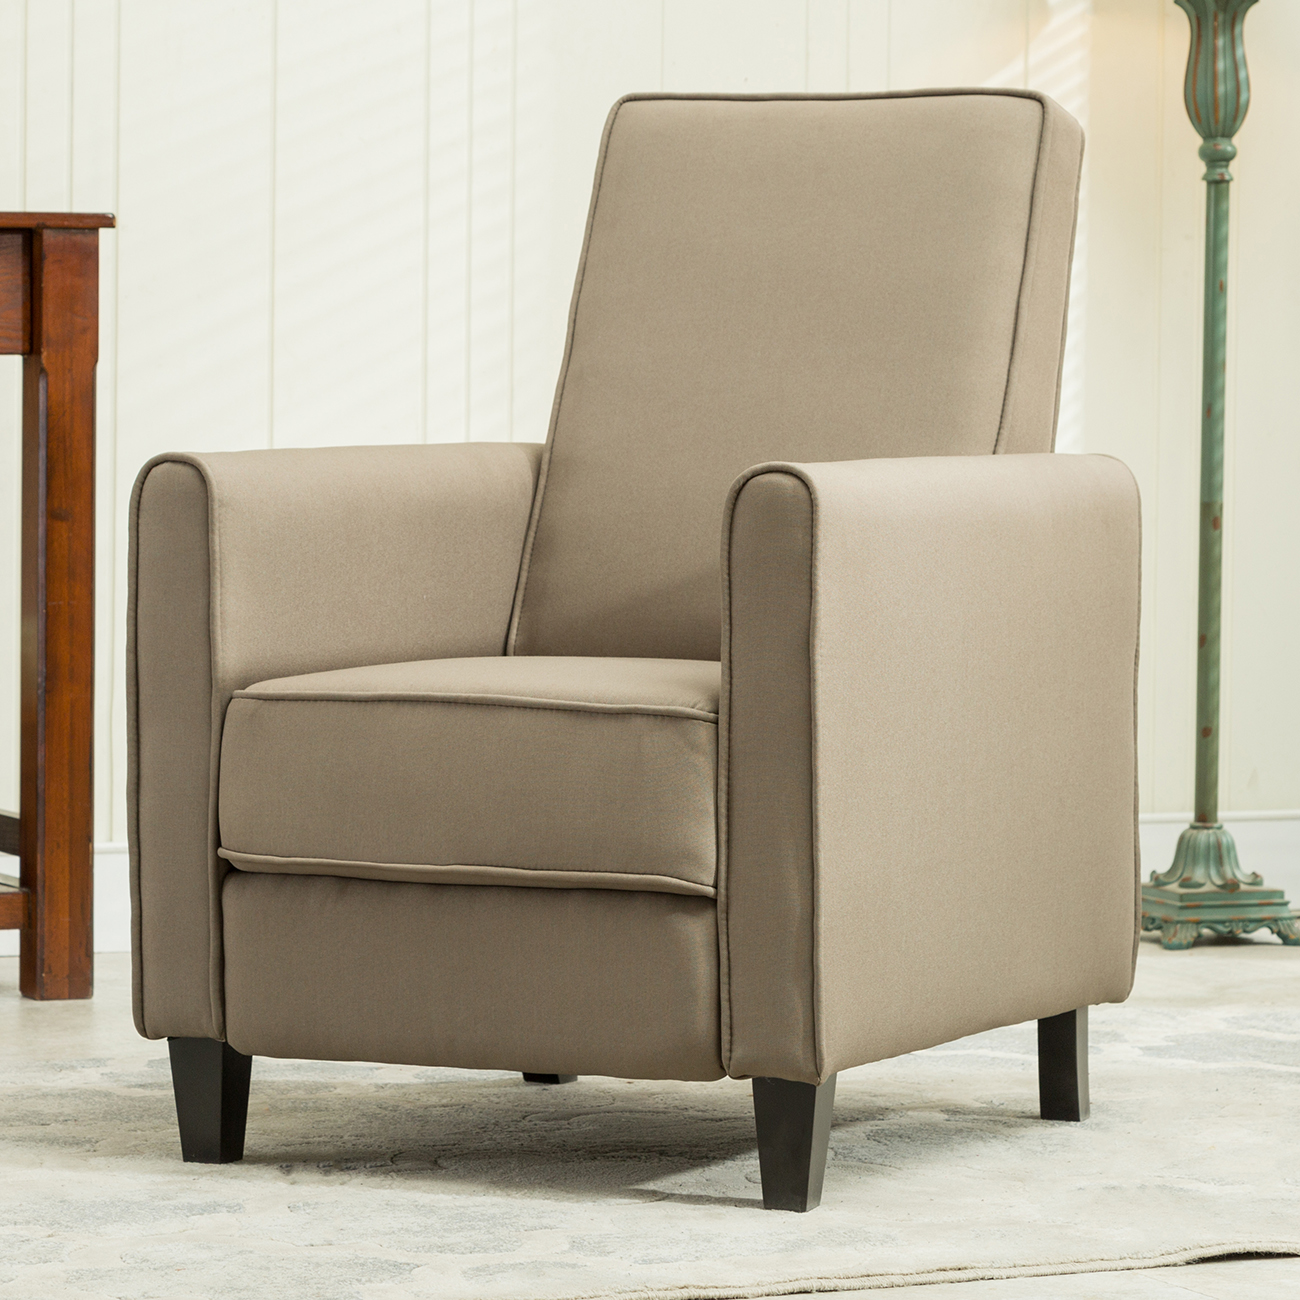 jarvis chair oz design stackable resin chairs lowes modern recliner club living room relax home